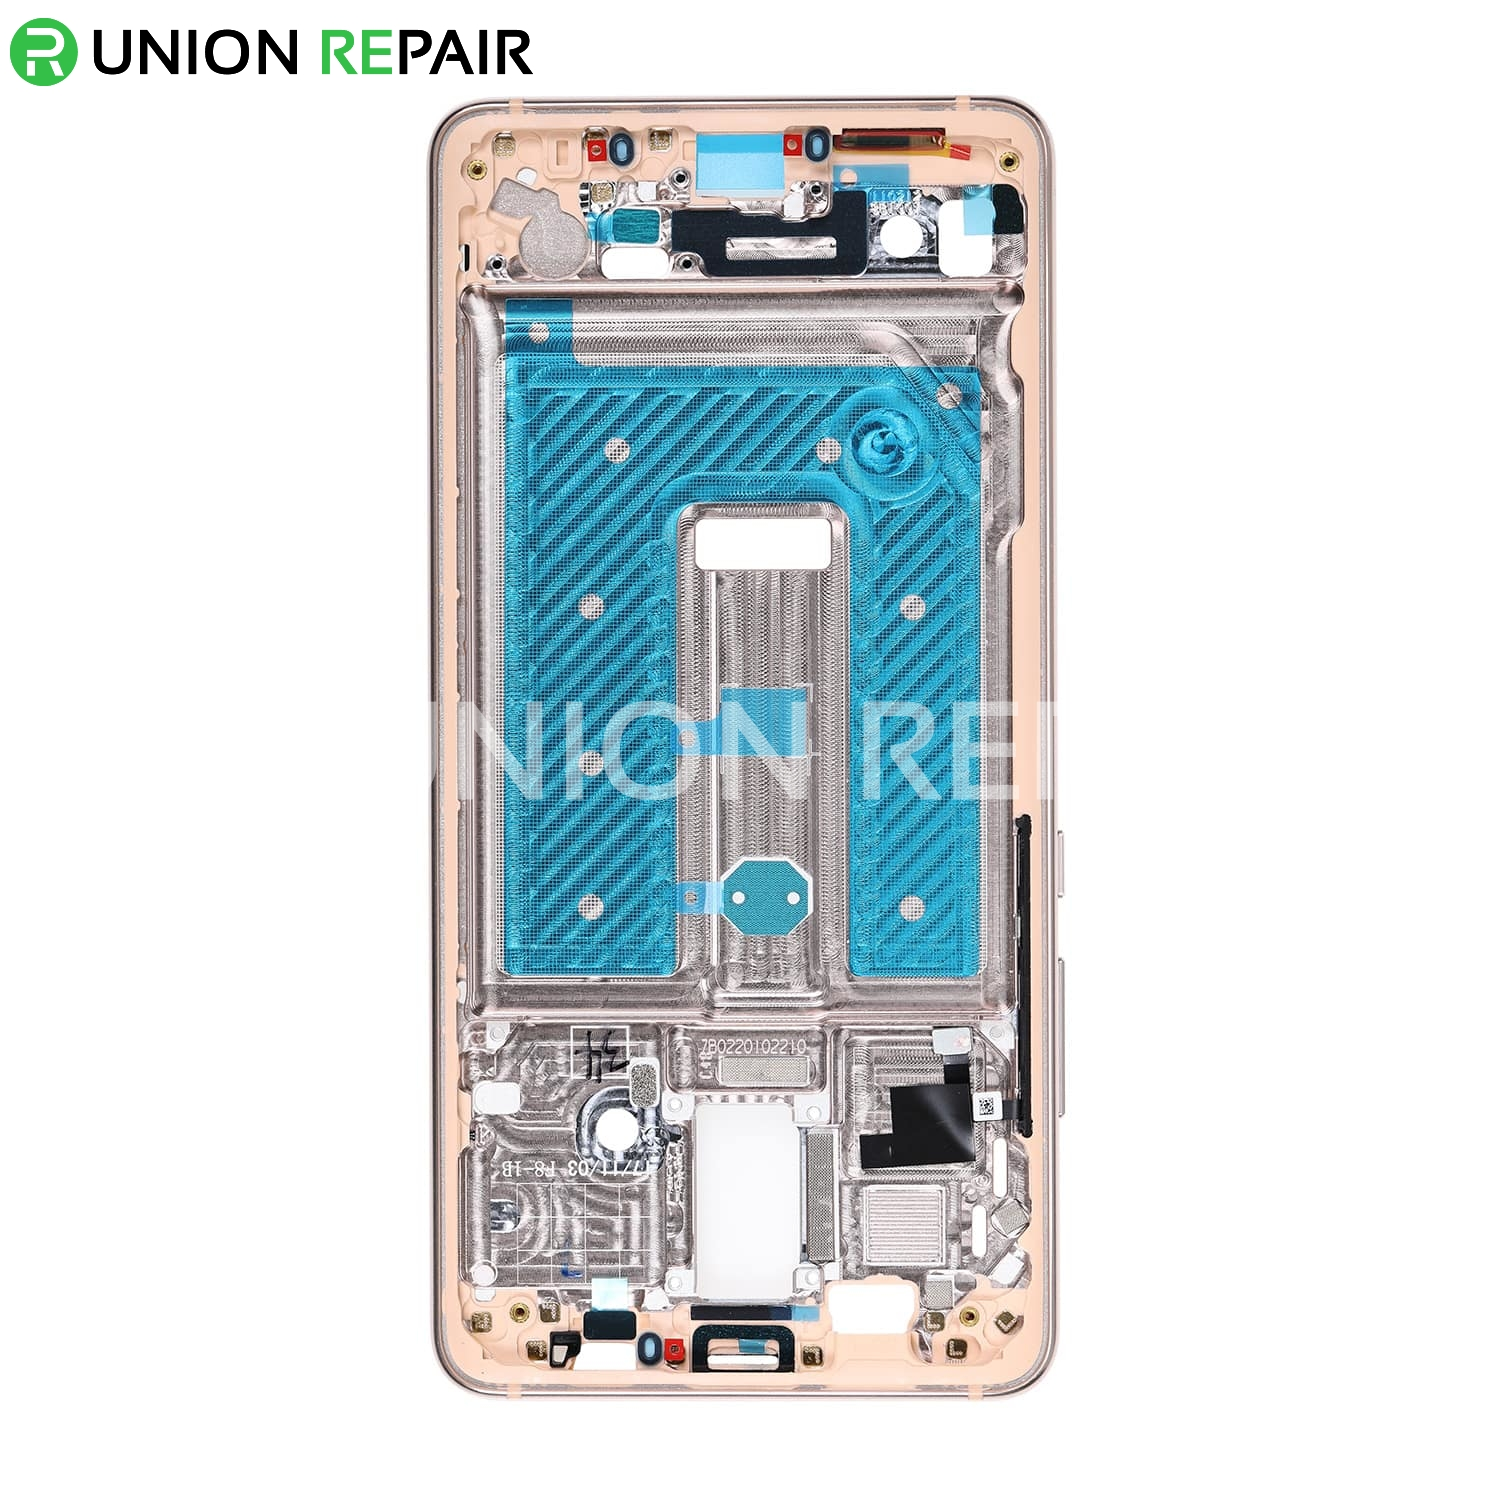 Replacement for Huawei Mate 10 Pro Front Housing LCD Frame Bezel Plate - Pink Gold